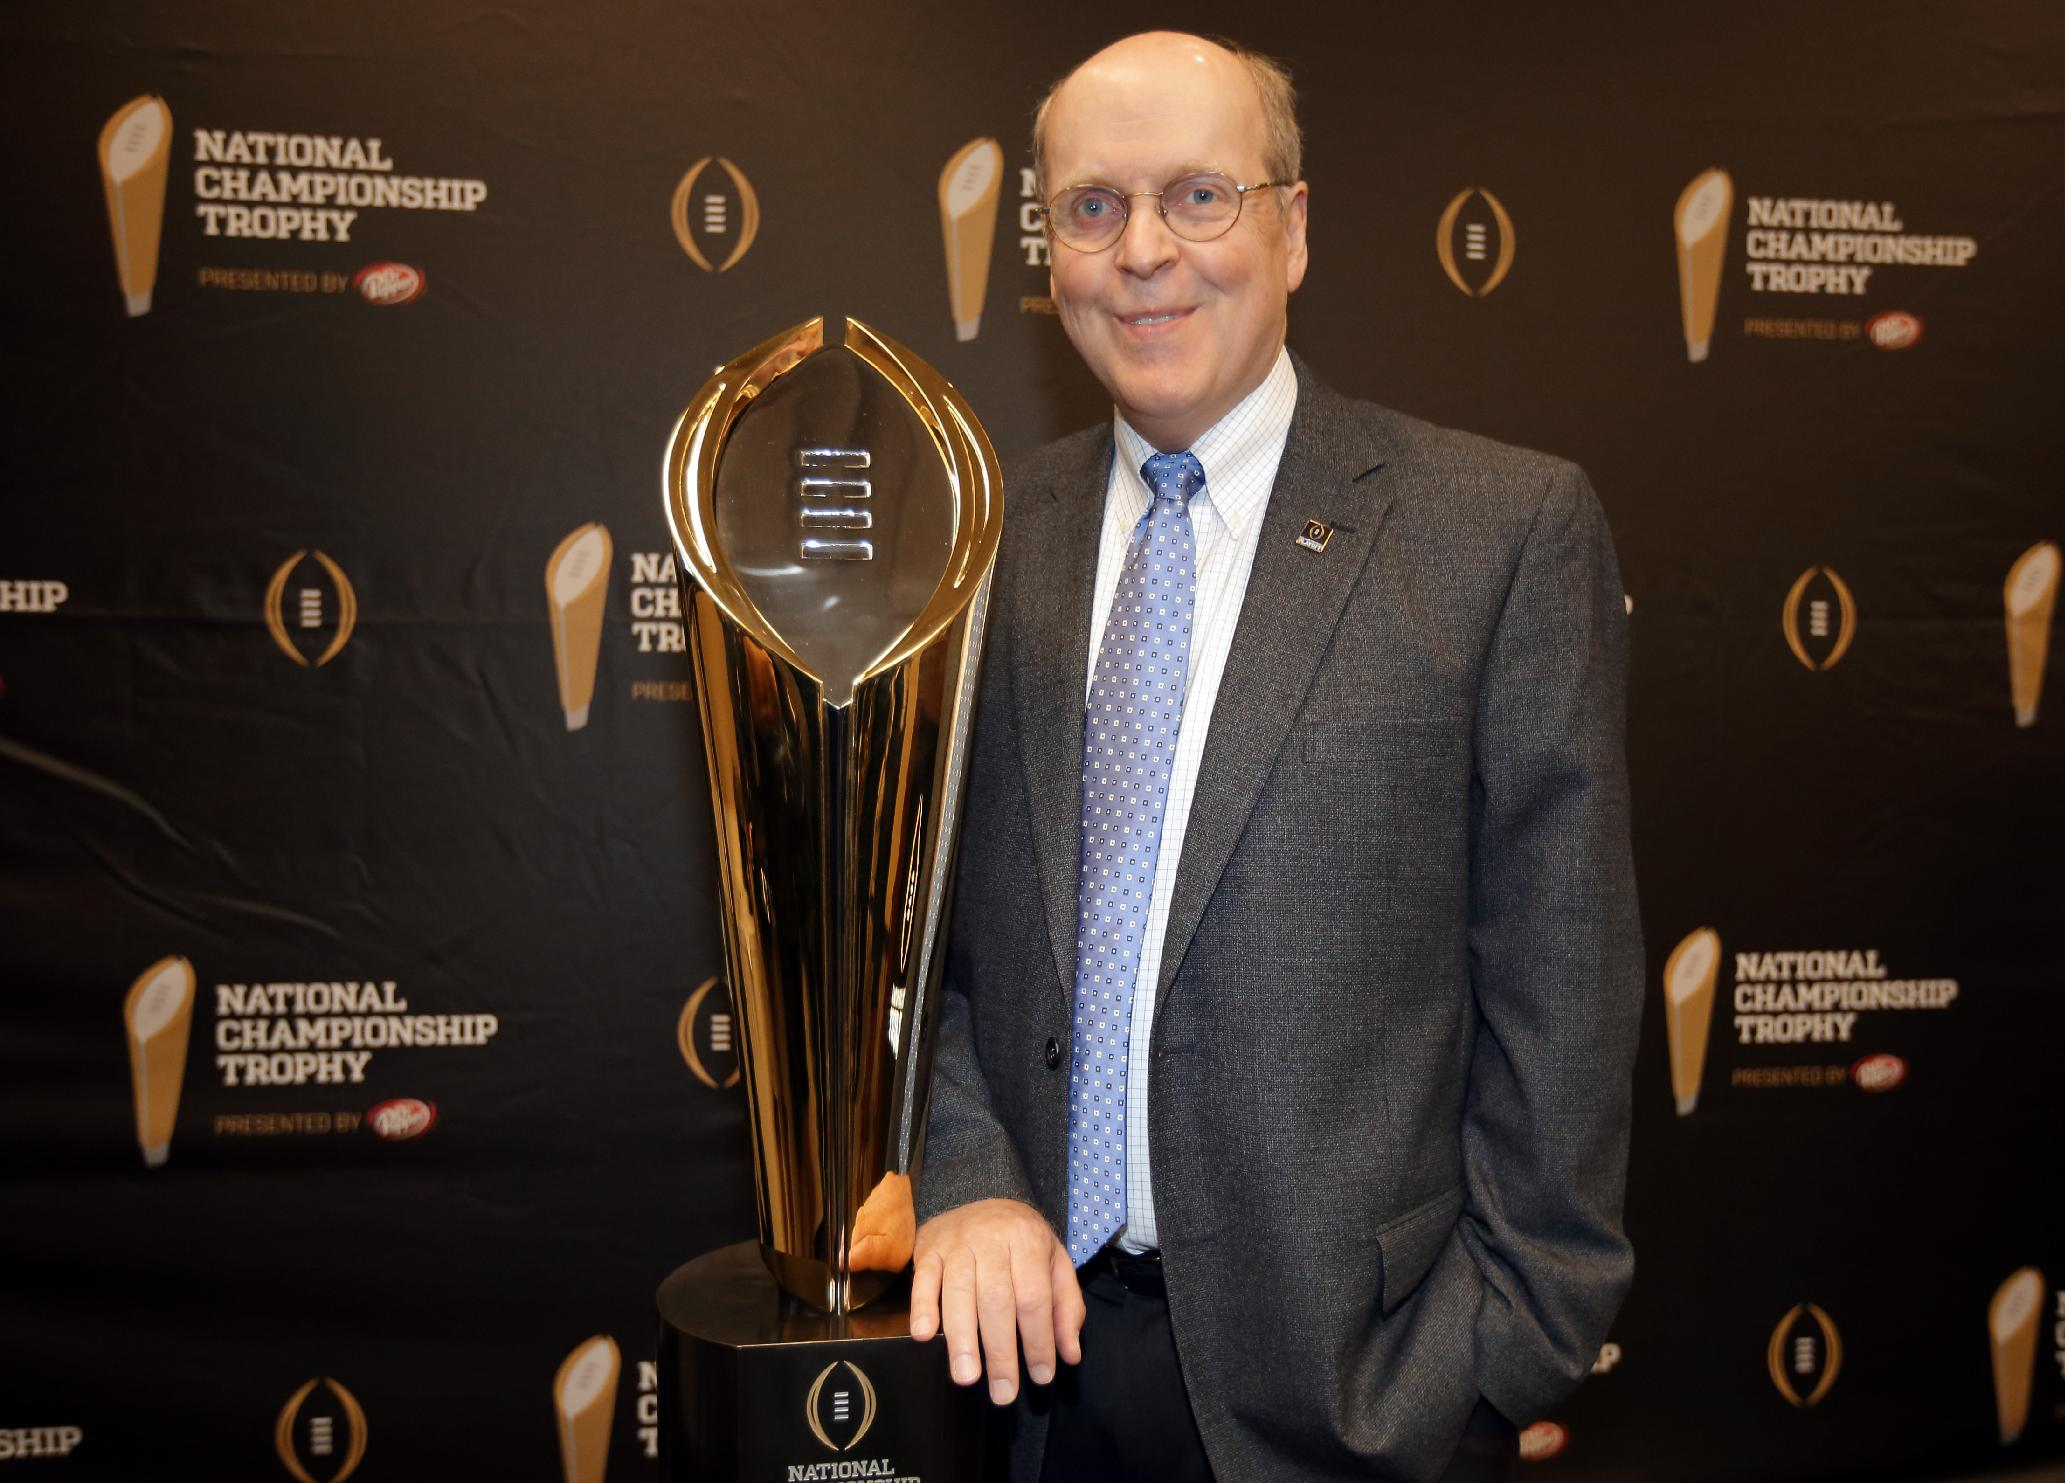 College Football Playoff Executive Director Bill Hancock poses with the College Football Playoff National Championship Trophy in Irving, Texas. (AP Photo/Tony Gutierrez, File)